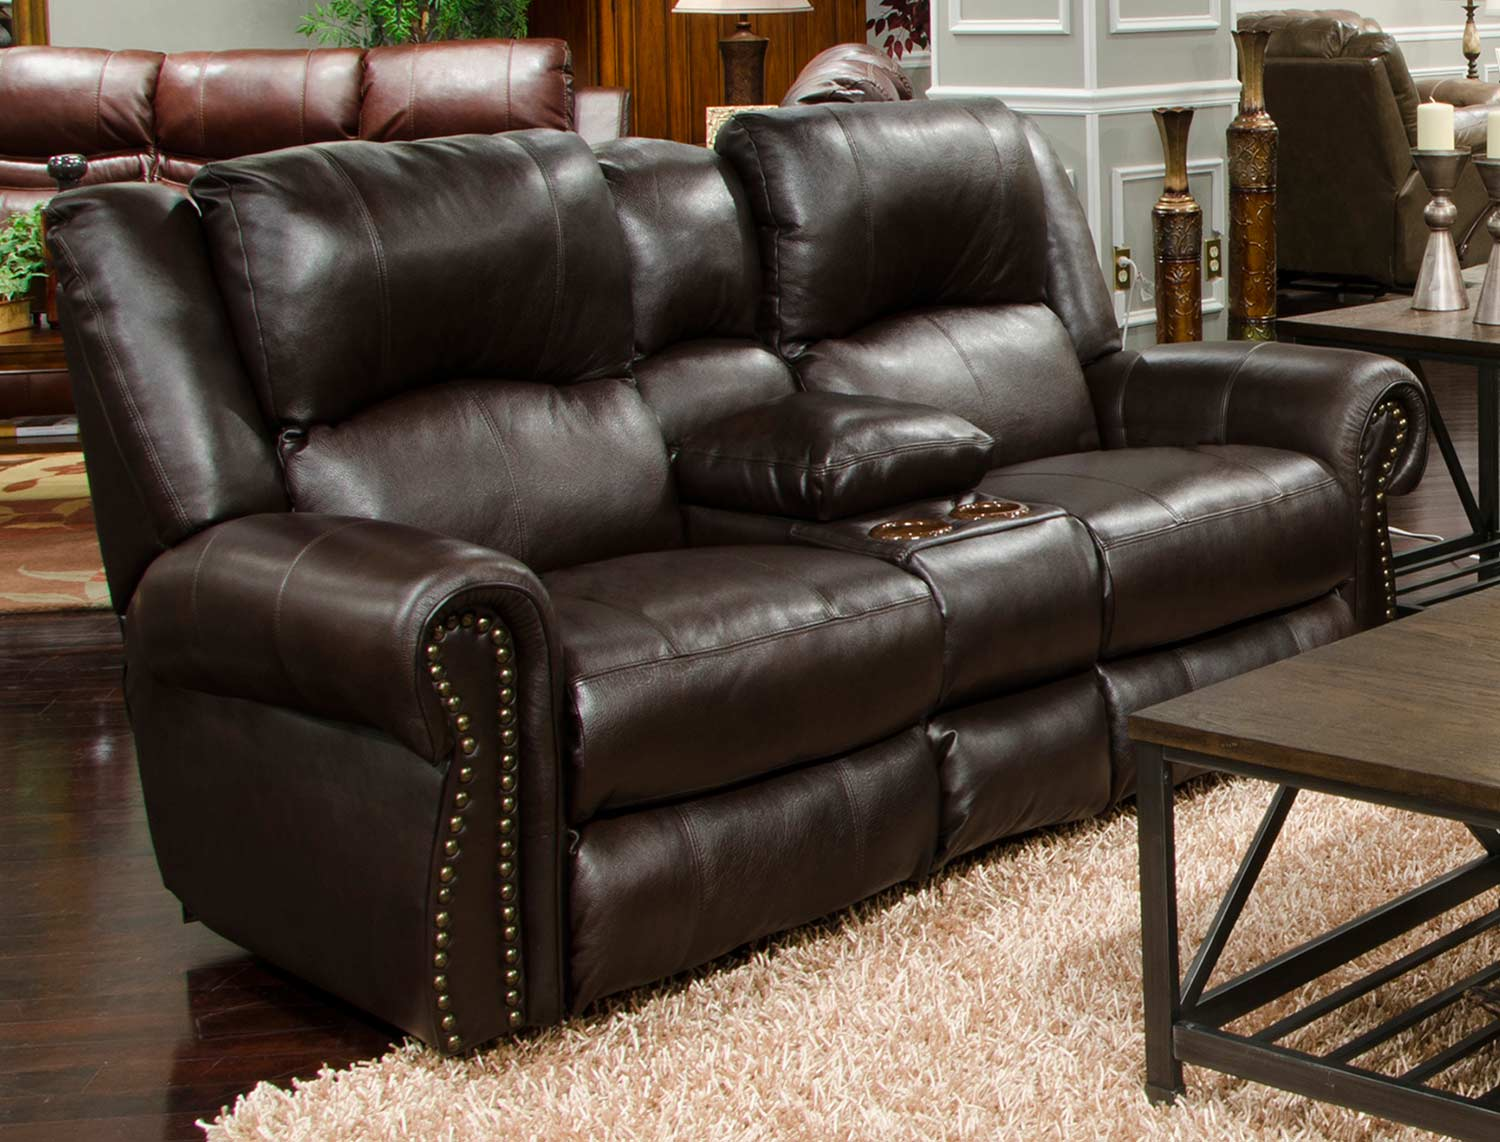 CatNapper Messina Leather Power Reclining Console Loveseat - Chocolate